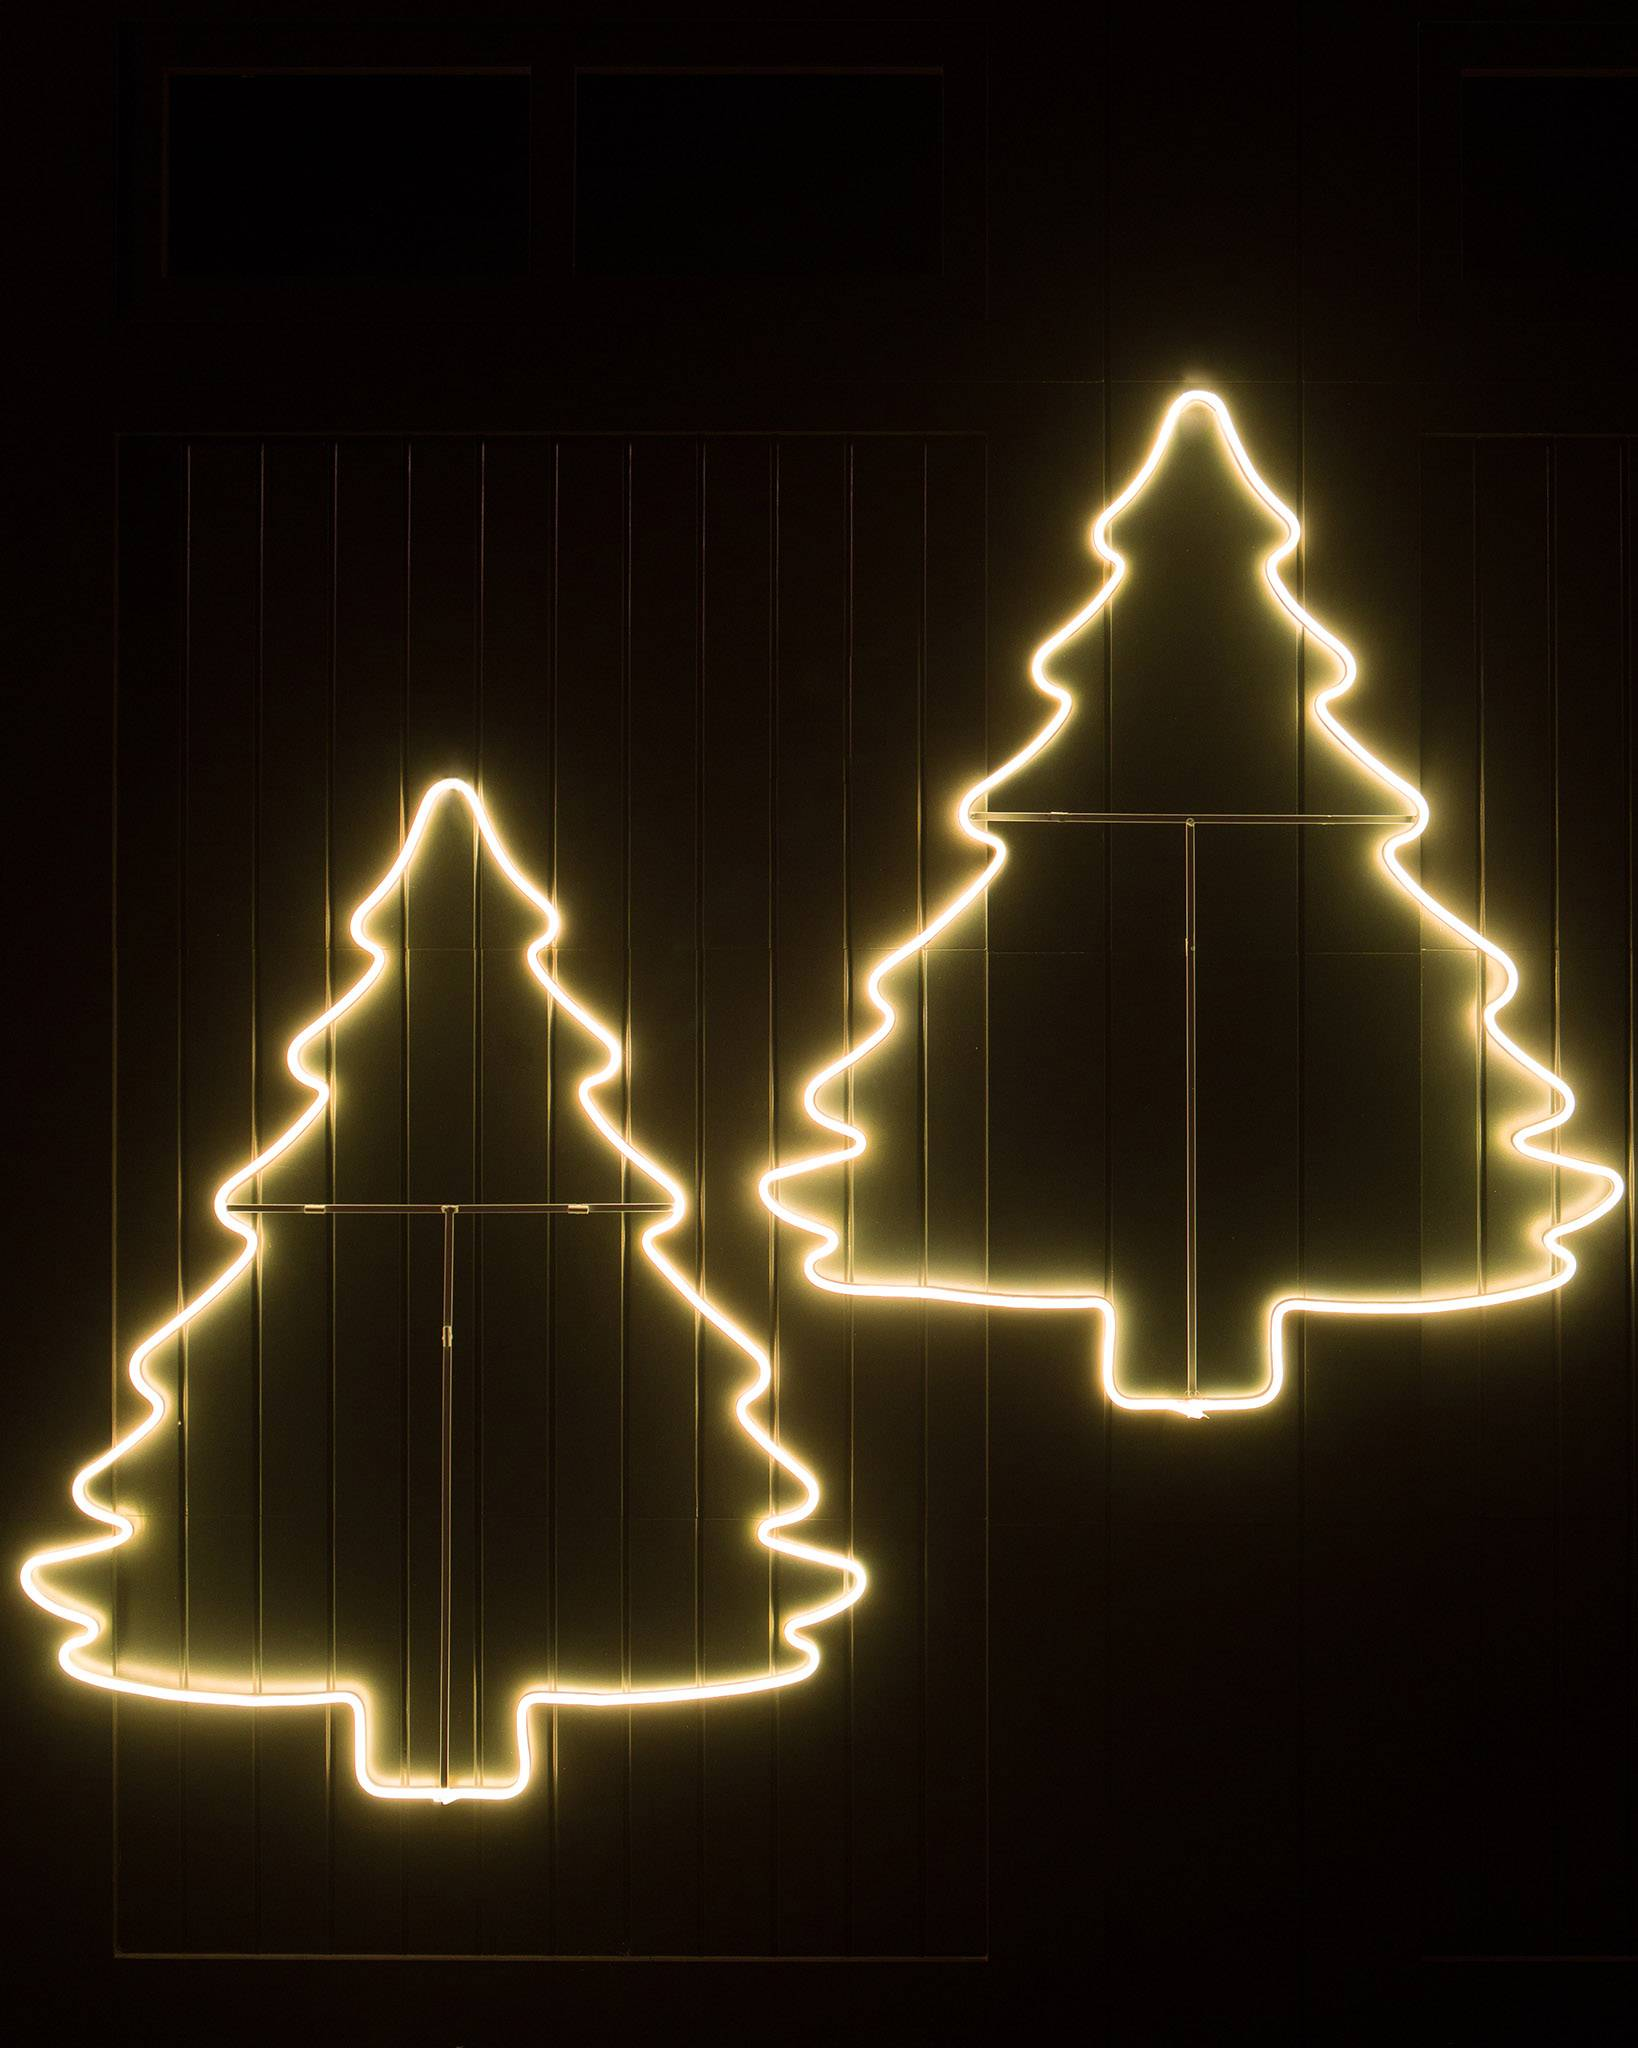 outdoor led holiday tree silhouettes set of 2 by balsam hill - Neon Outdoor Christmas Decorations